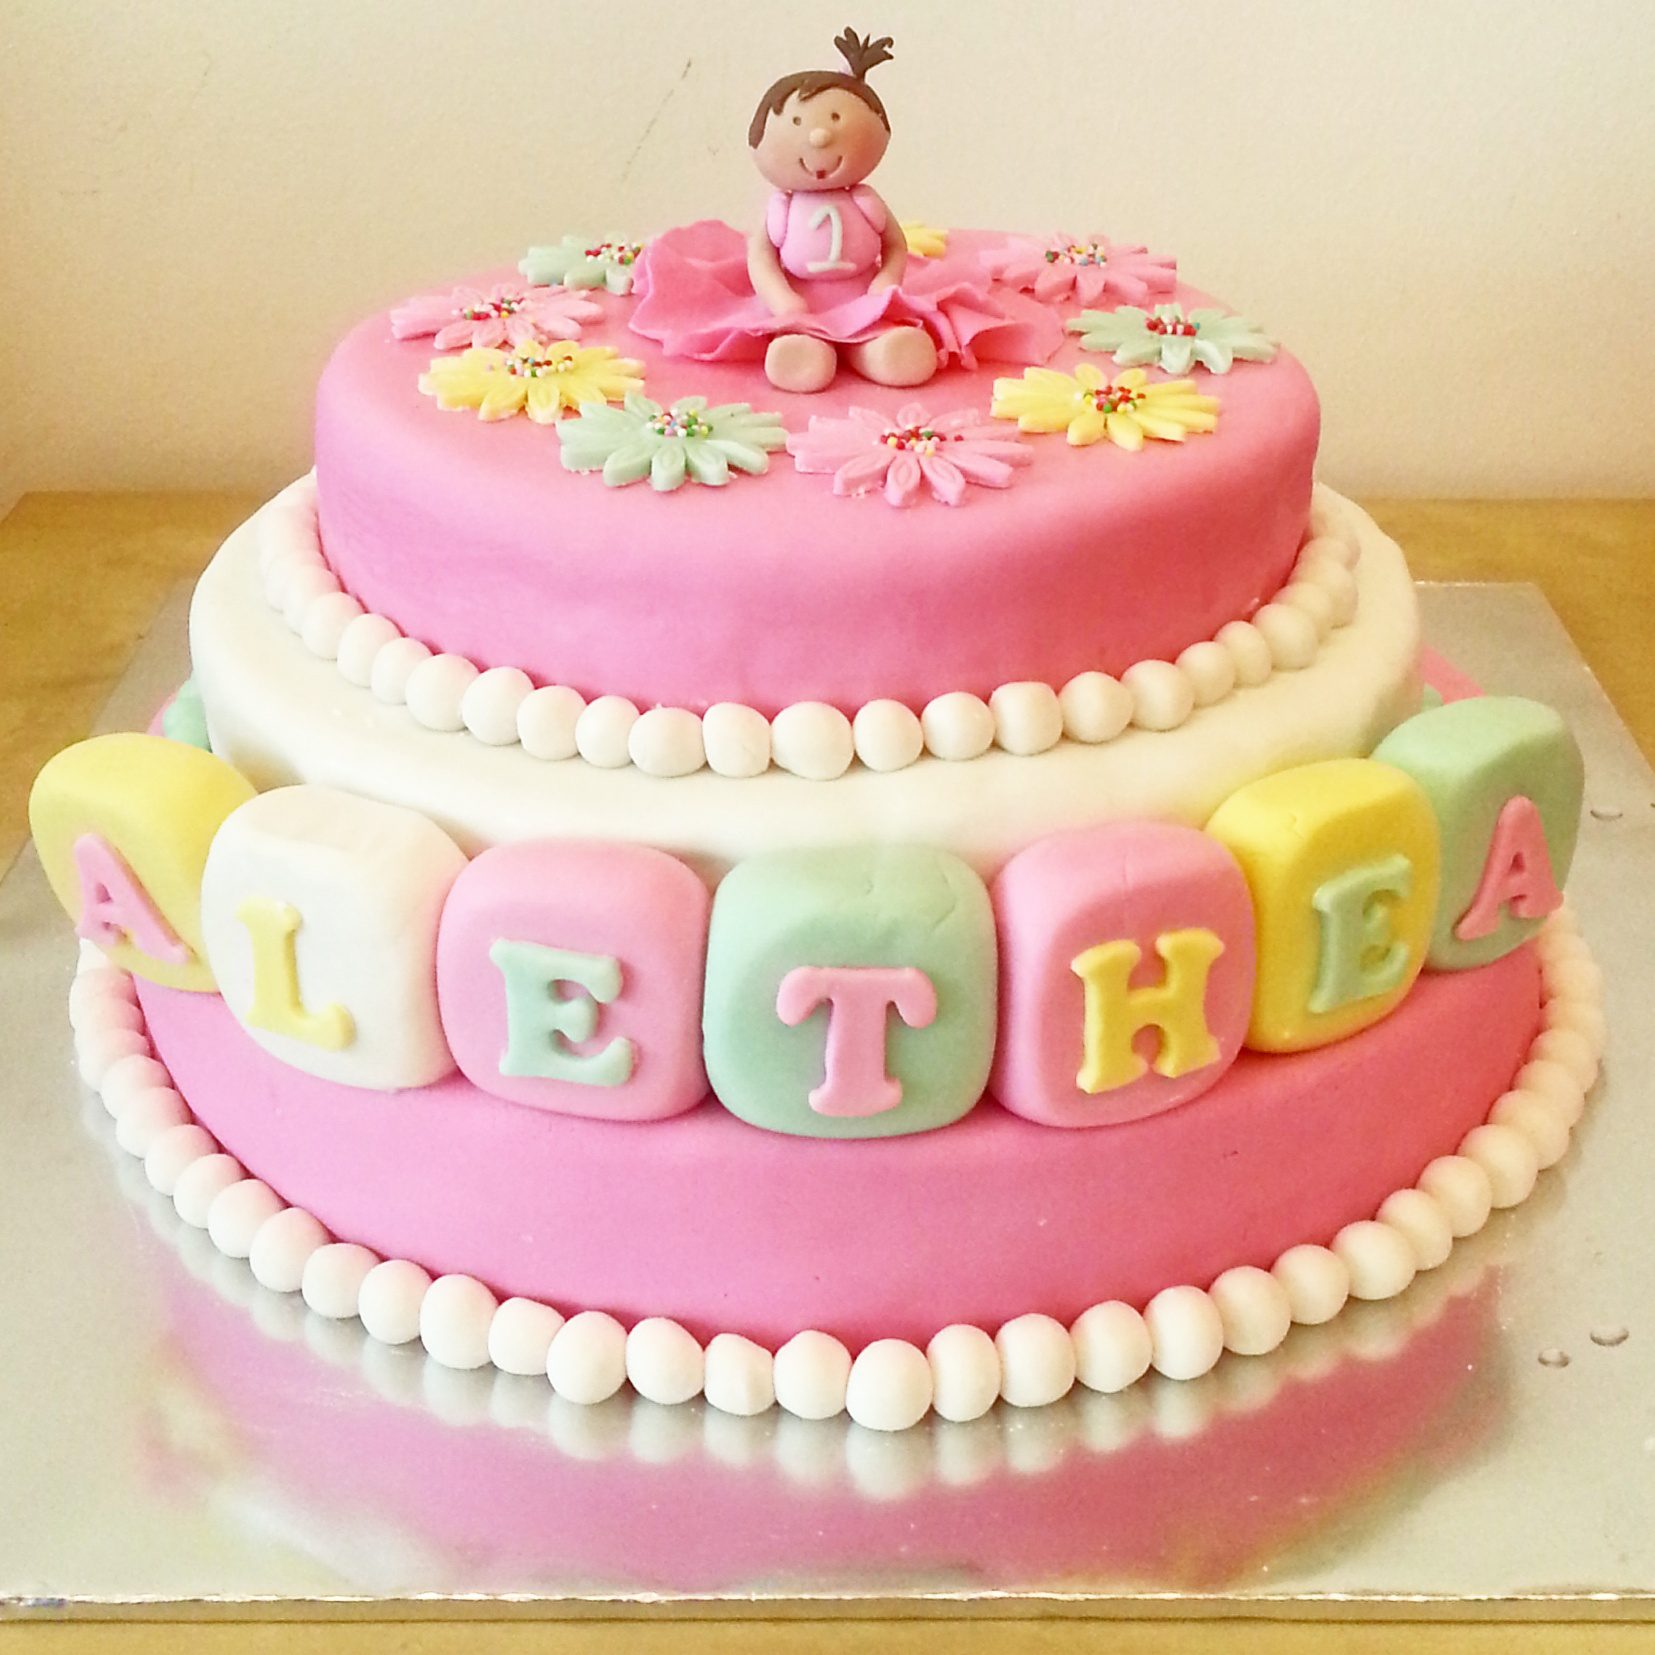 Tremendous 3D Fondant 3 Tier Princess Theme 1 Year Old Cake Delcies Personalised Birthday Cards Cominlily Jamesorg